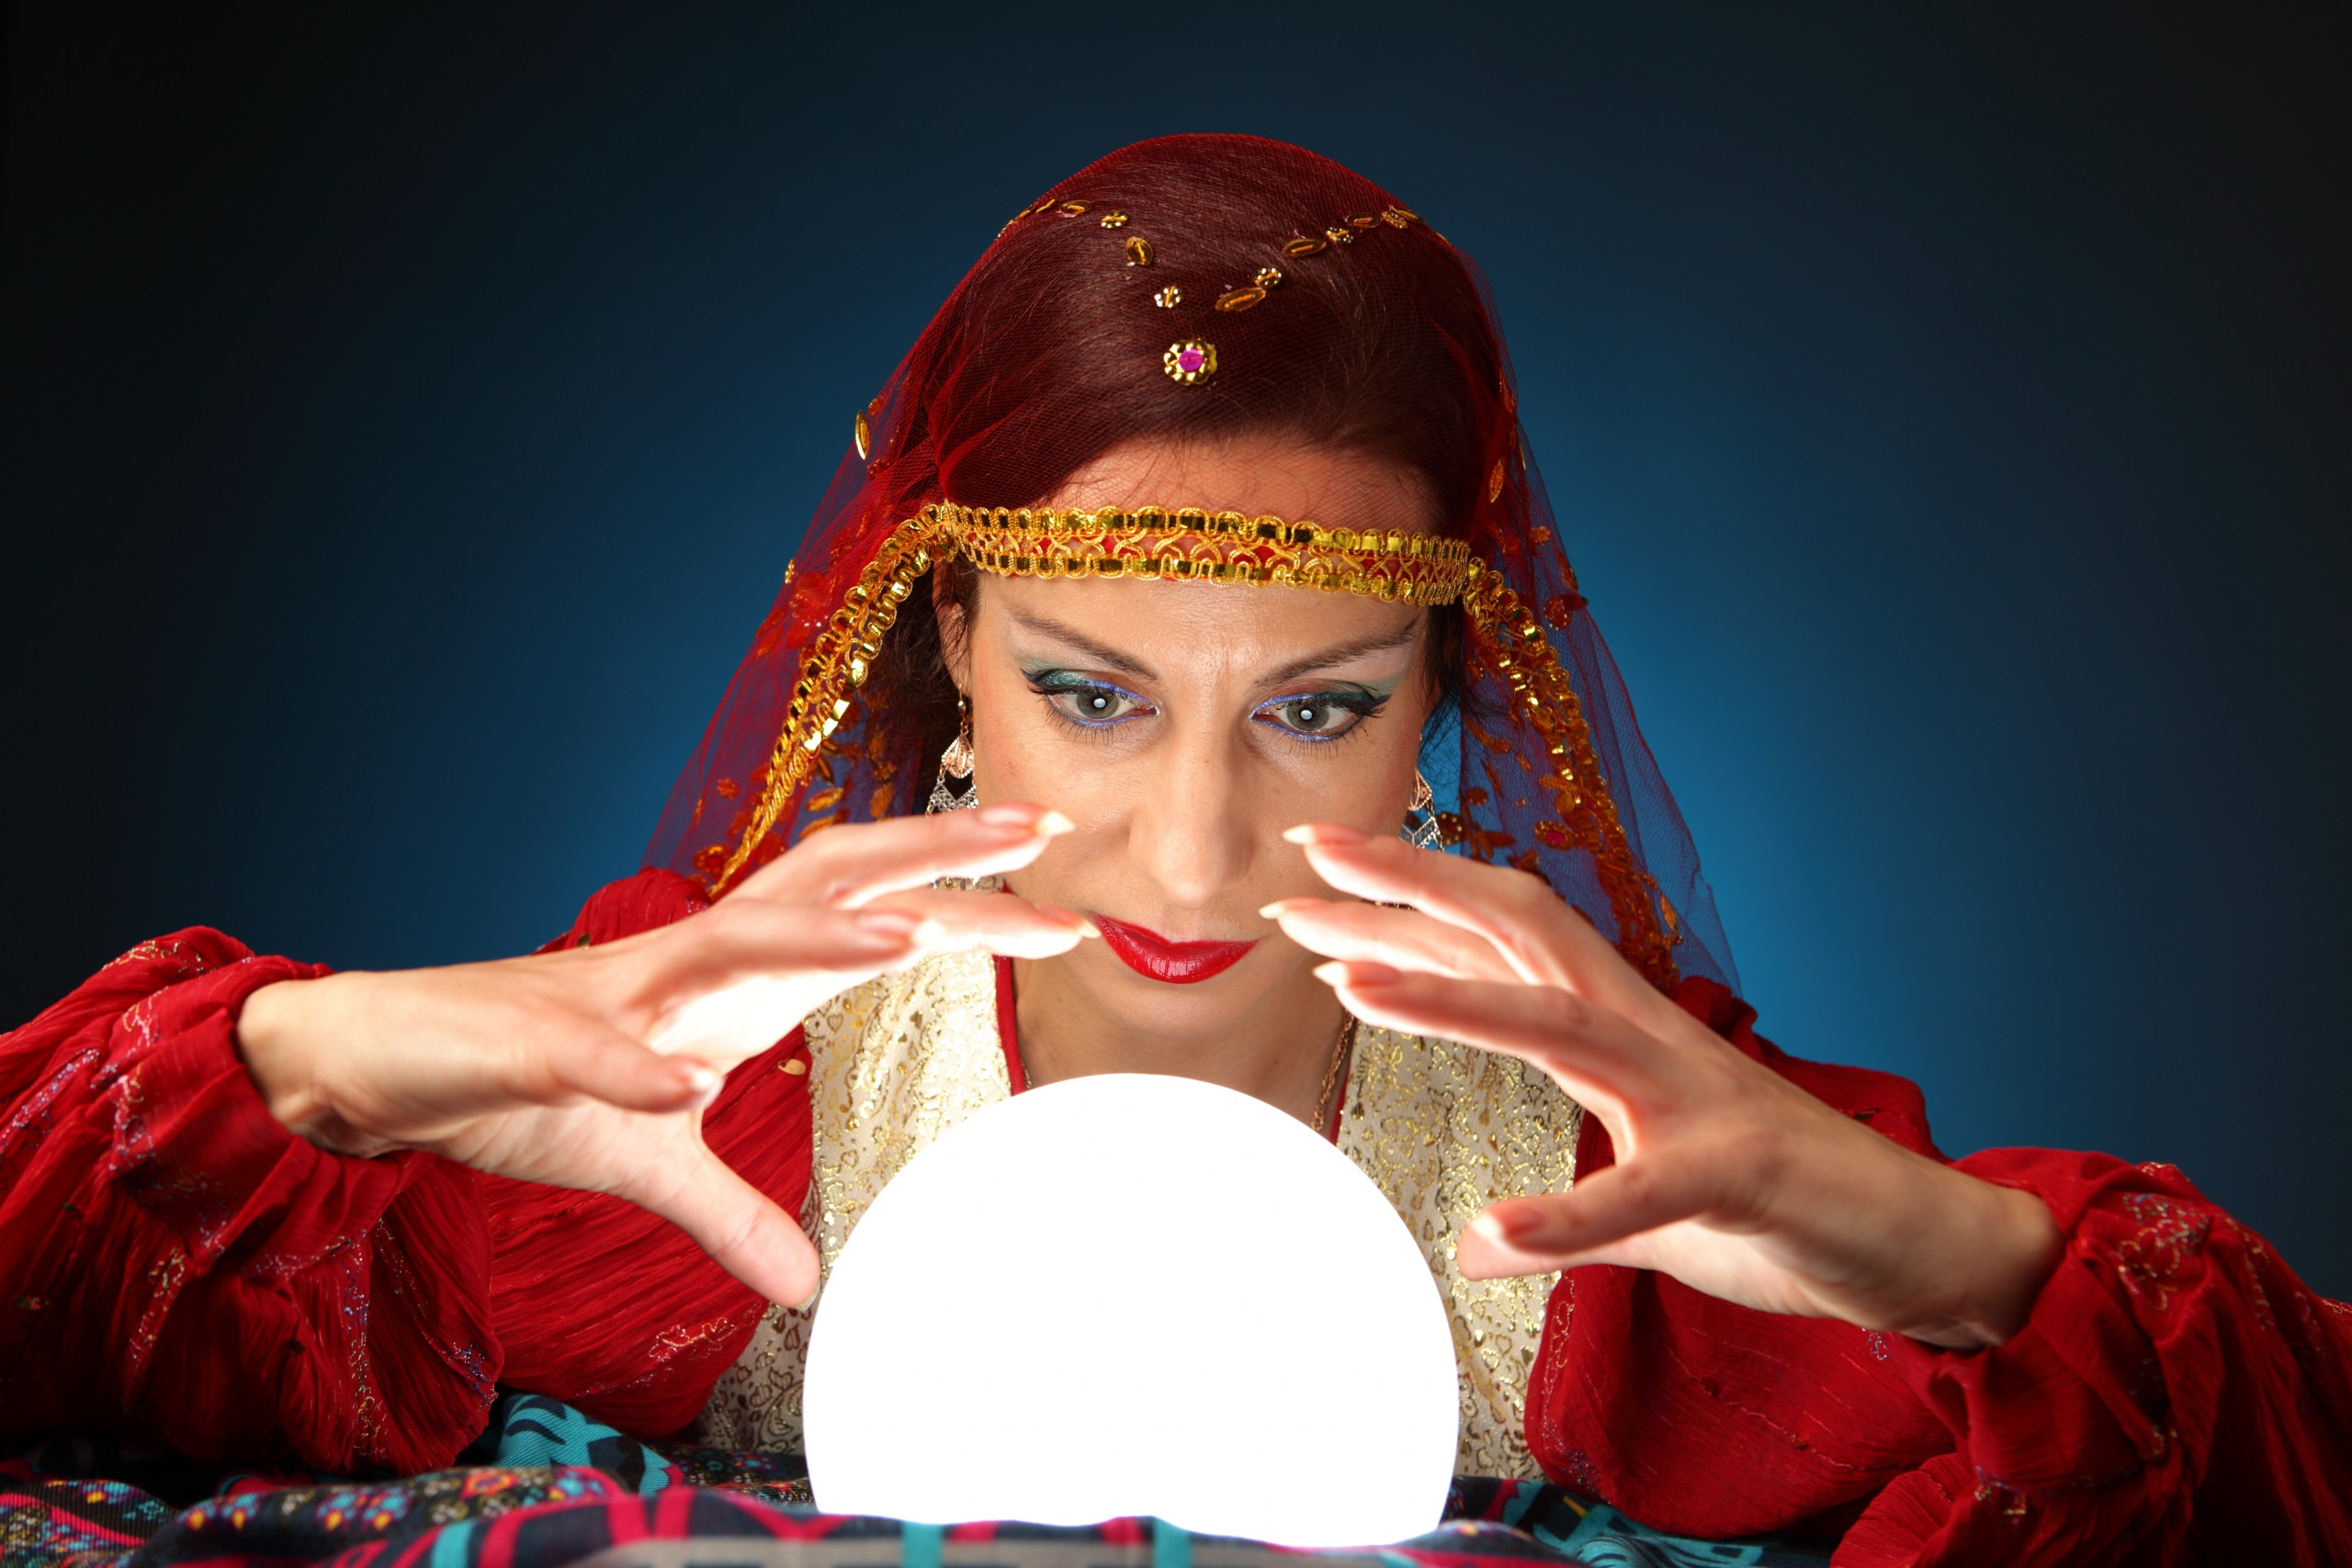 Woman dressed in fortune-tellers costume peering into a lighted crystal ball.